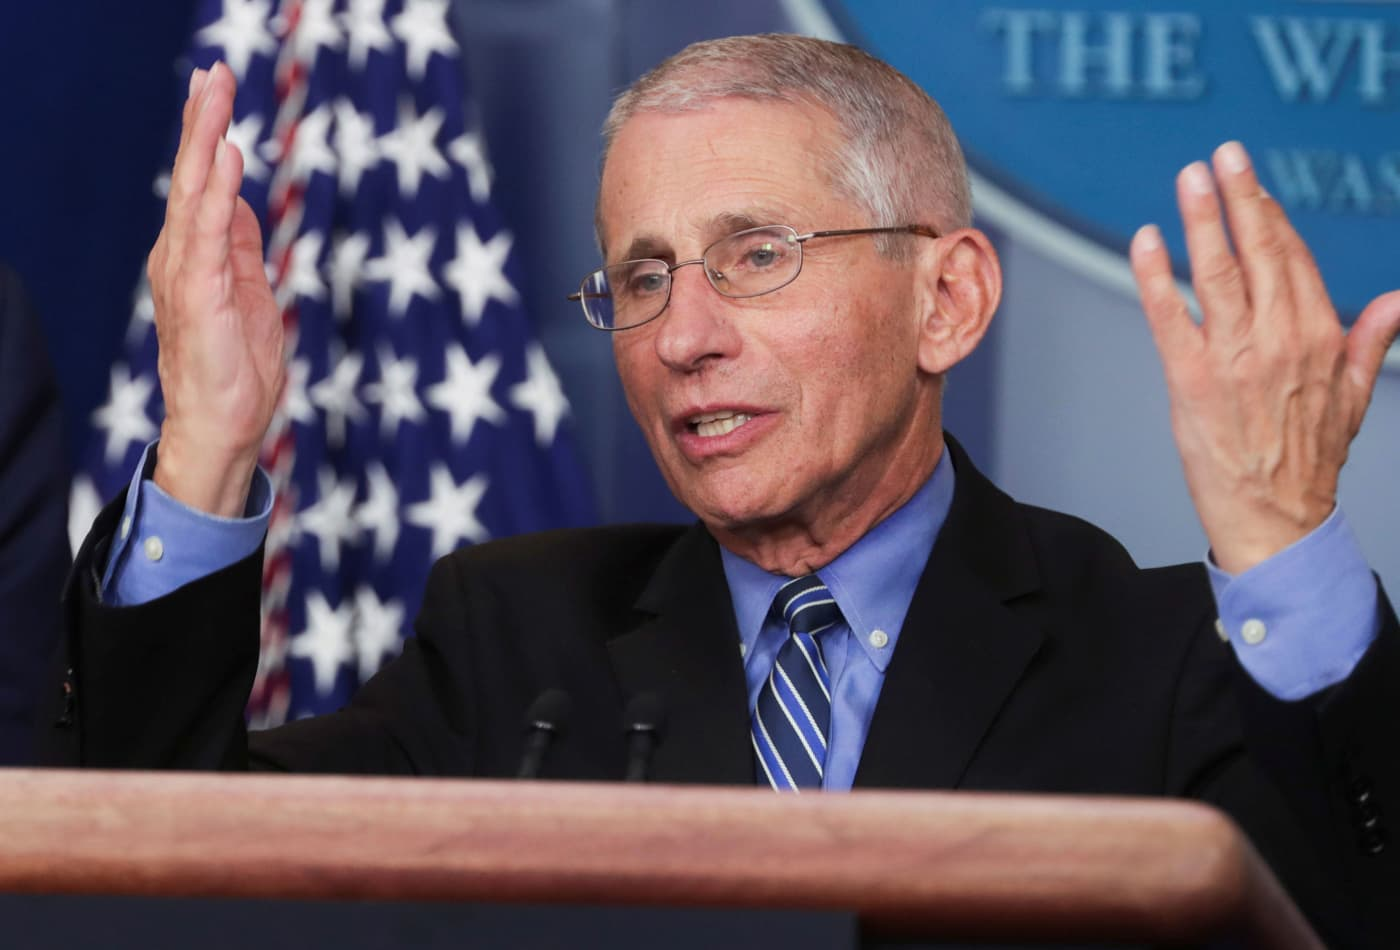 Coronavirus: Fauci tells basketball star Stephen Curry US 'can start thinking about' getting back to normal when pandemic curve falls